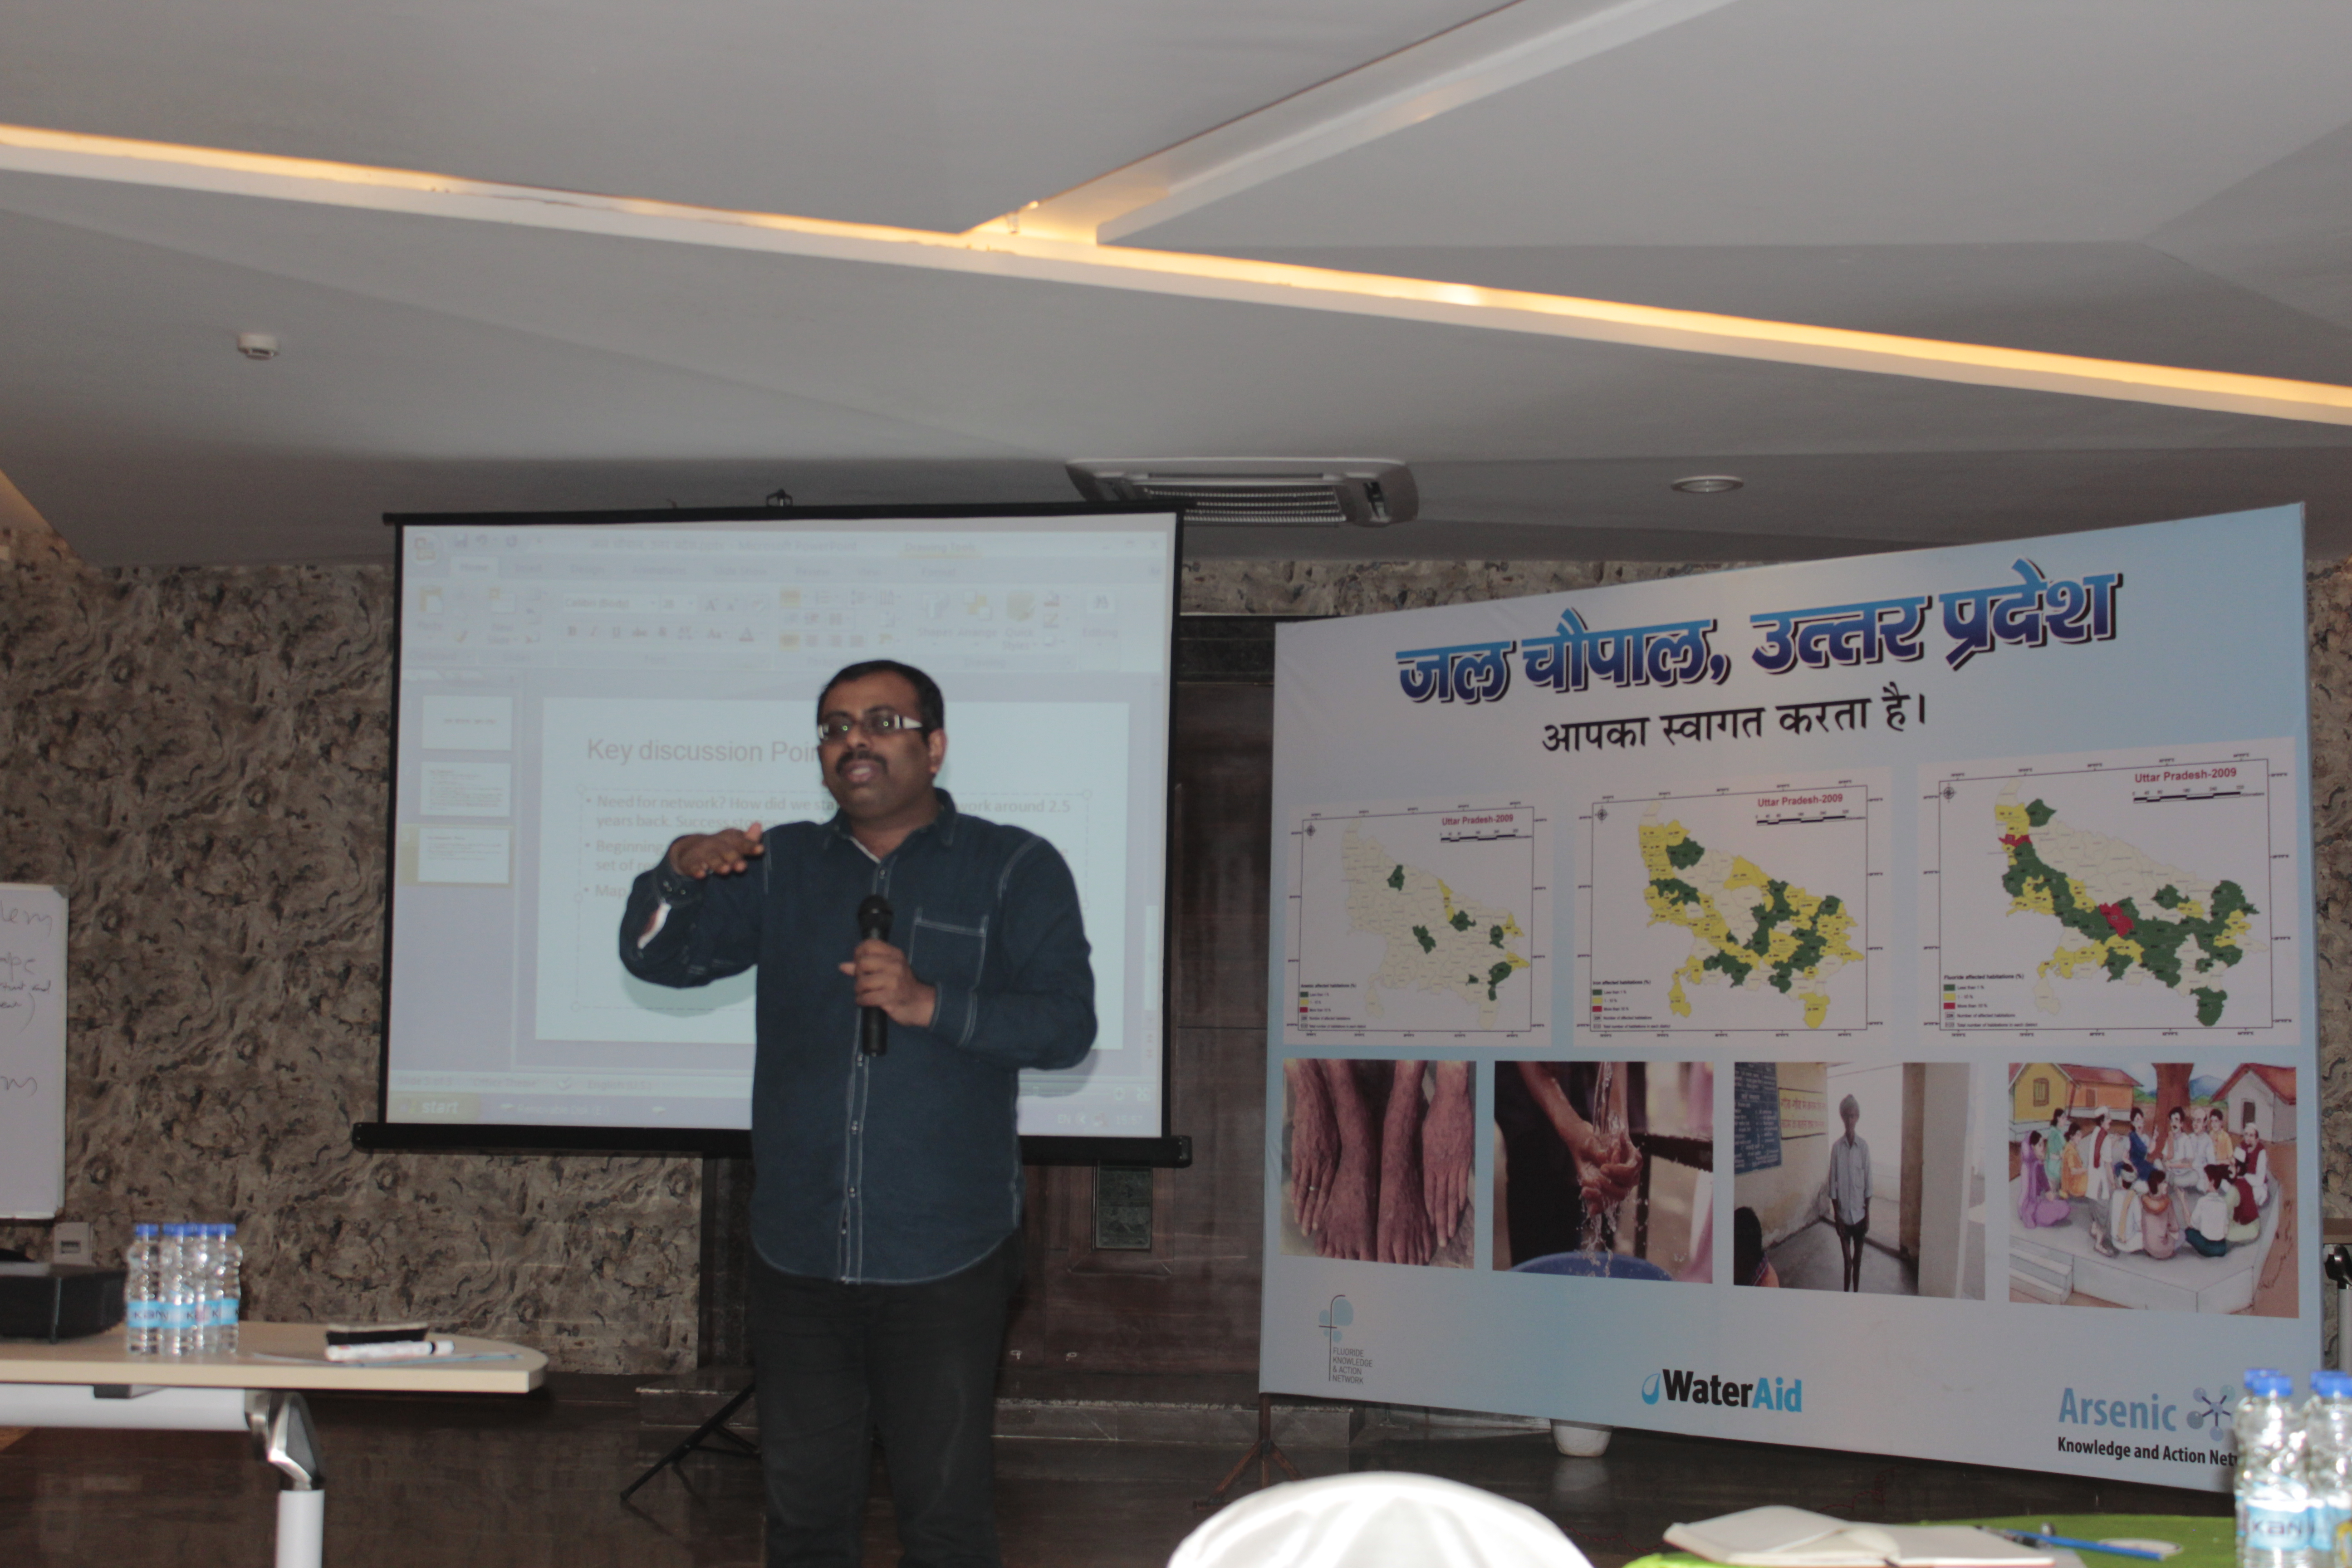 Jal Choupal: Workshop on Drinking Water quality in Lucknow, Uttar Pradesh